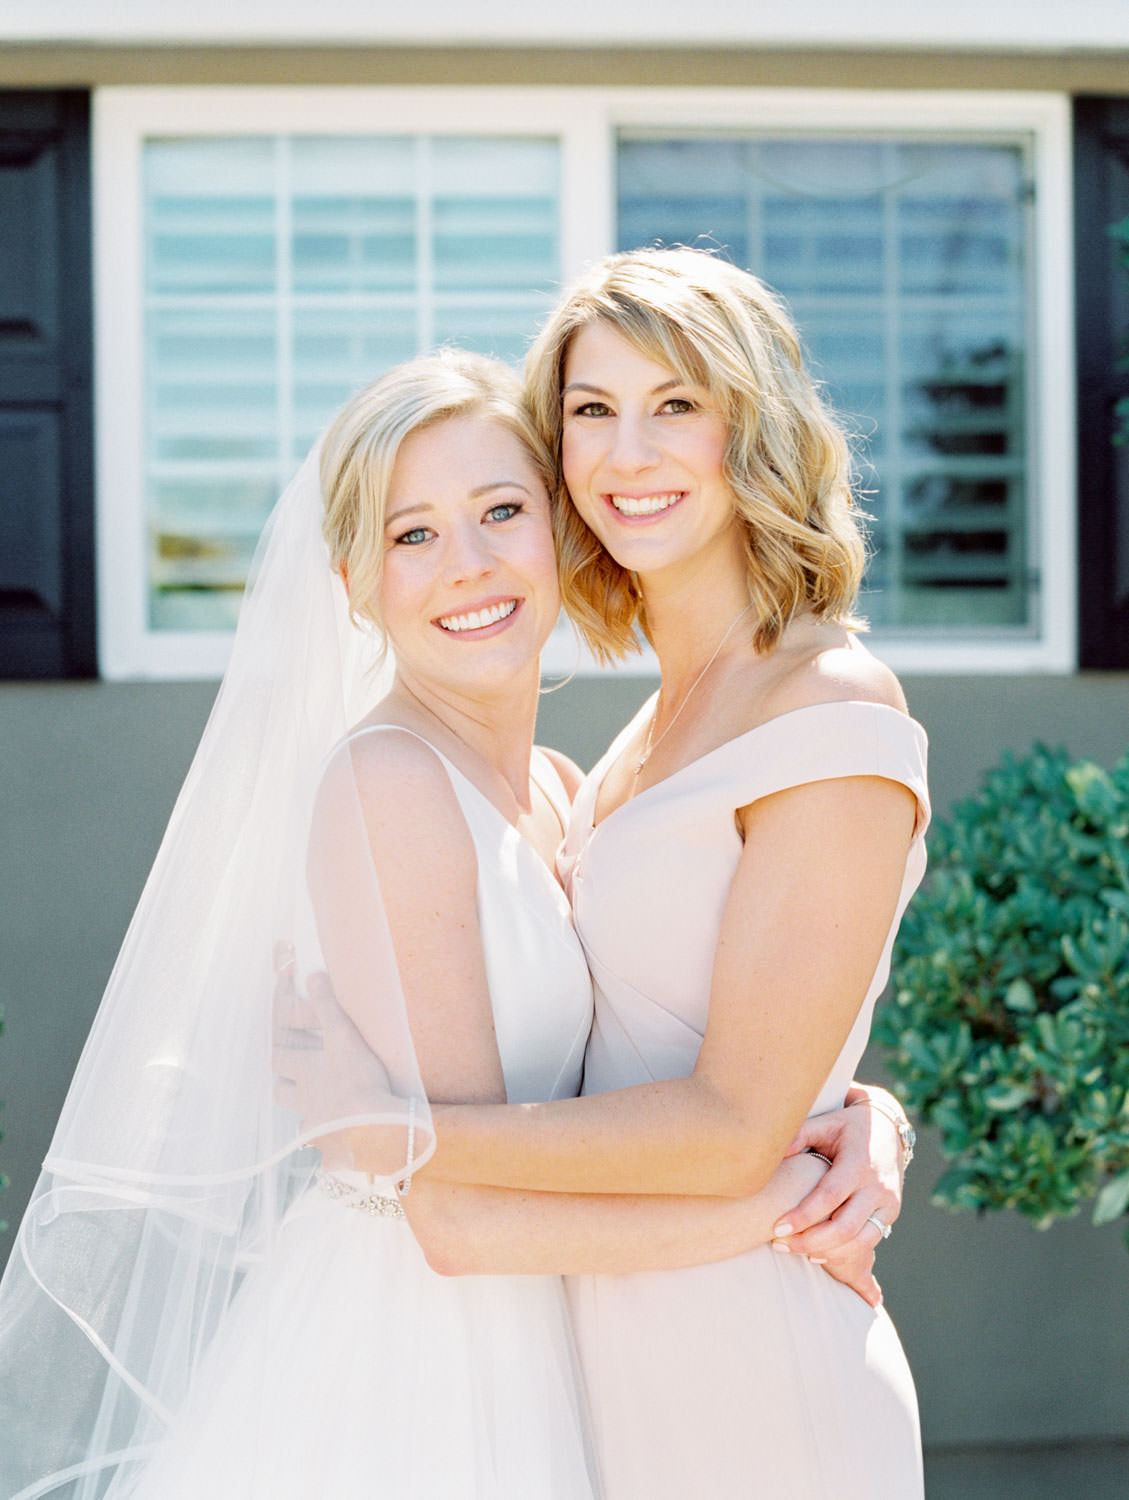 Bride in Stella York gown and veil for a classic bridal portrait with her sister in a blush off shoulder gown. San Diego wedding shot on film by Cavin Elizabeth Photography